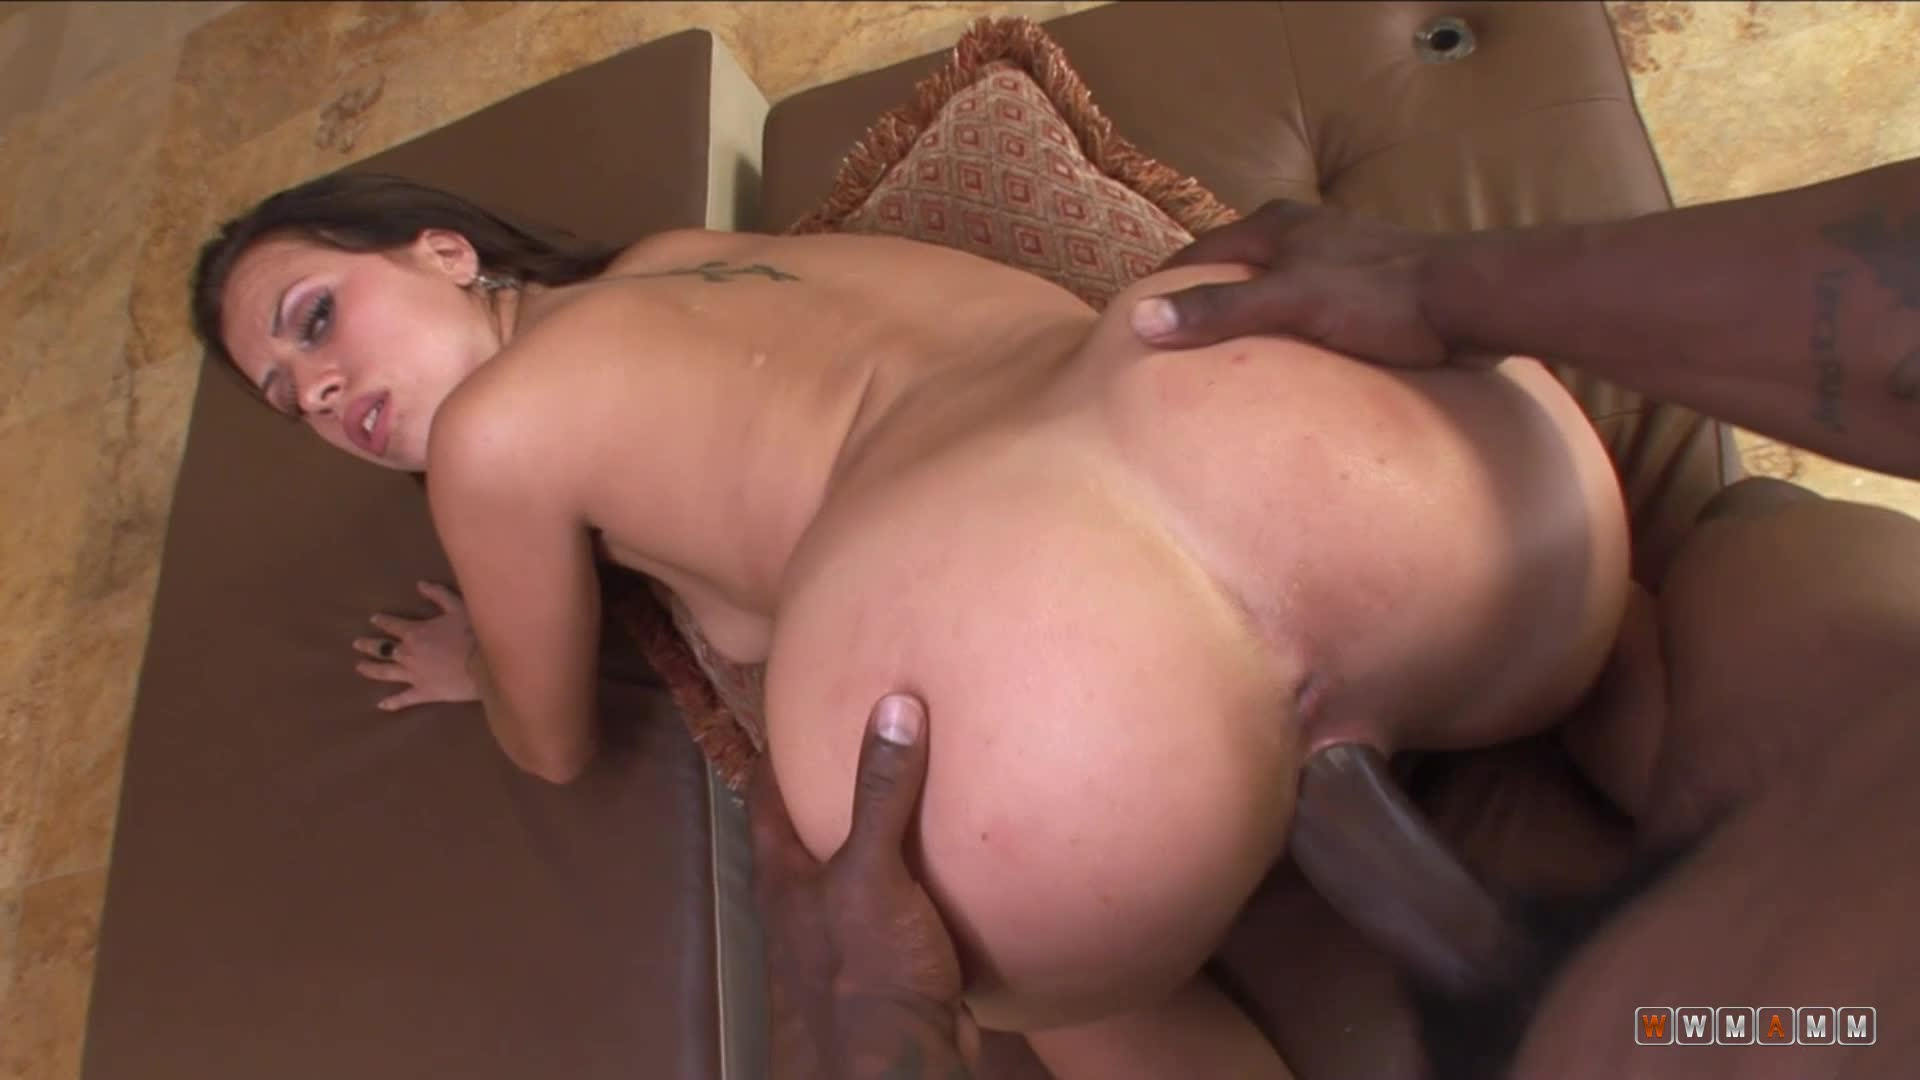 Naughty Katya Will Enjoy Her Ride On A Big Black Cock So Much